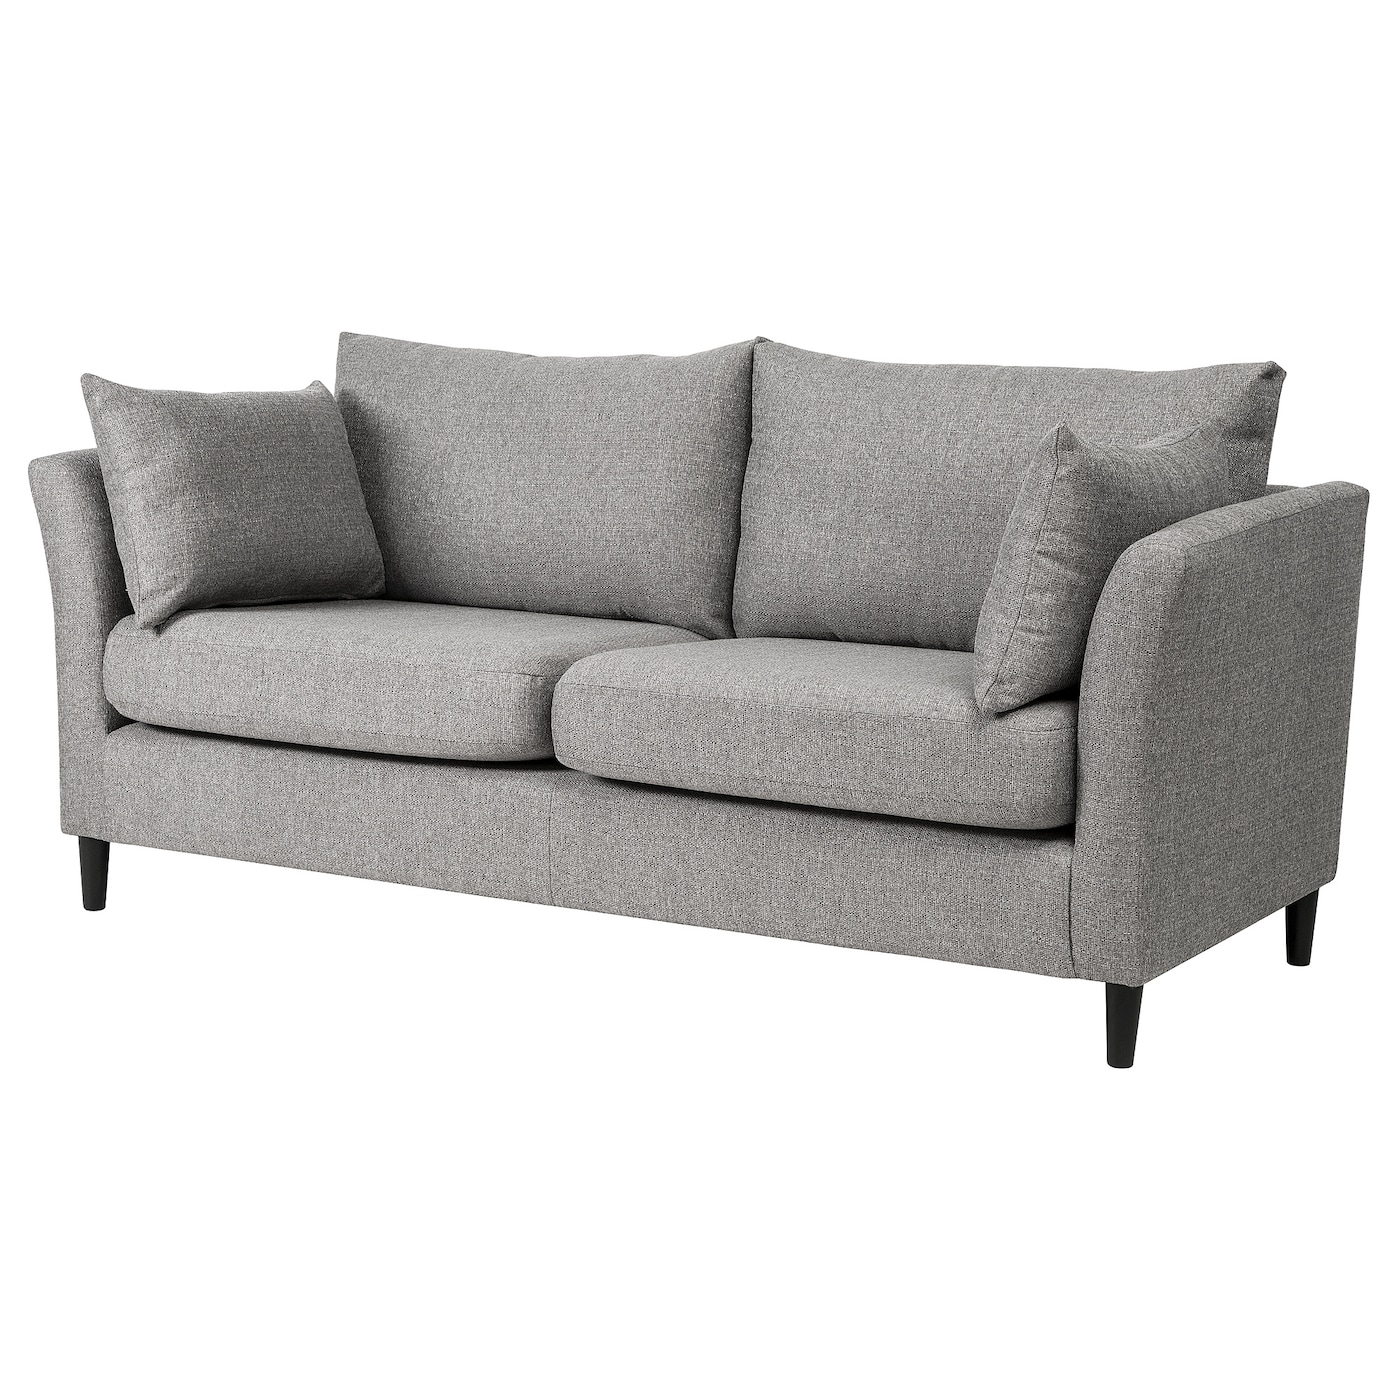 Bankeryd 3 seat sofa grey ikea for Sofa bed 3 2